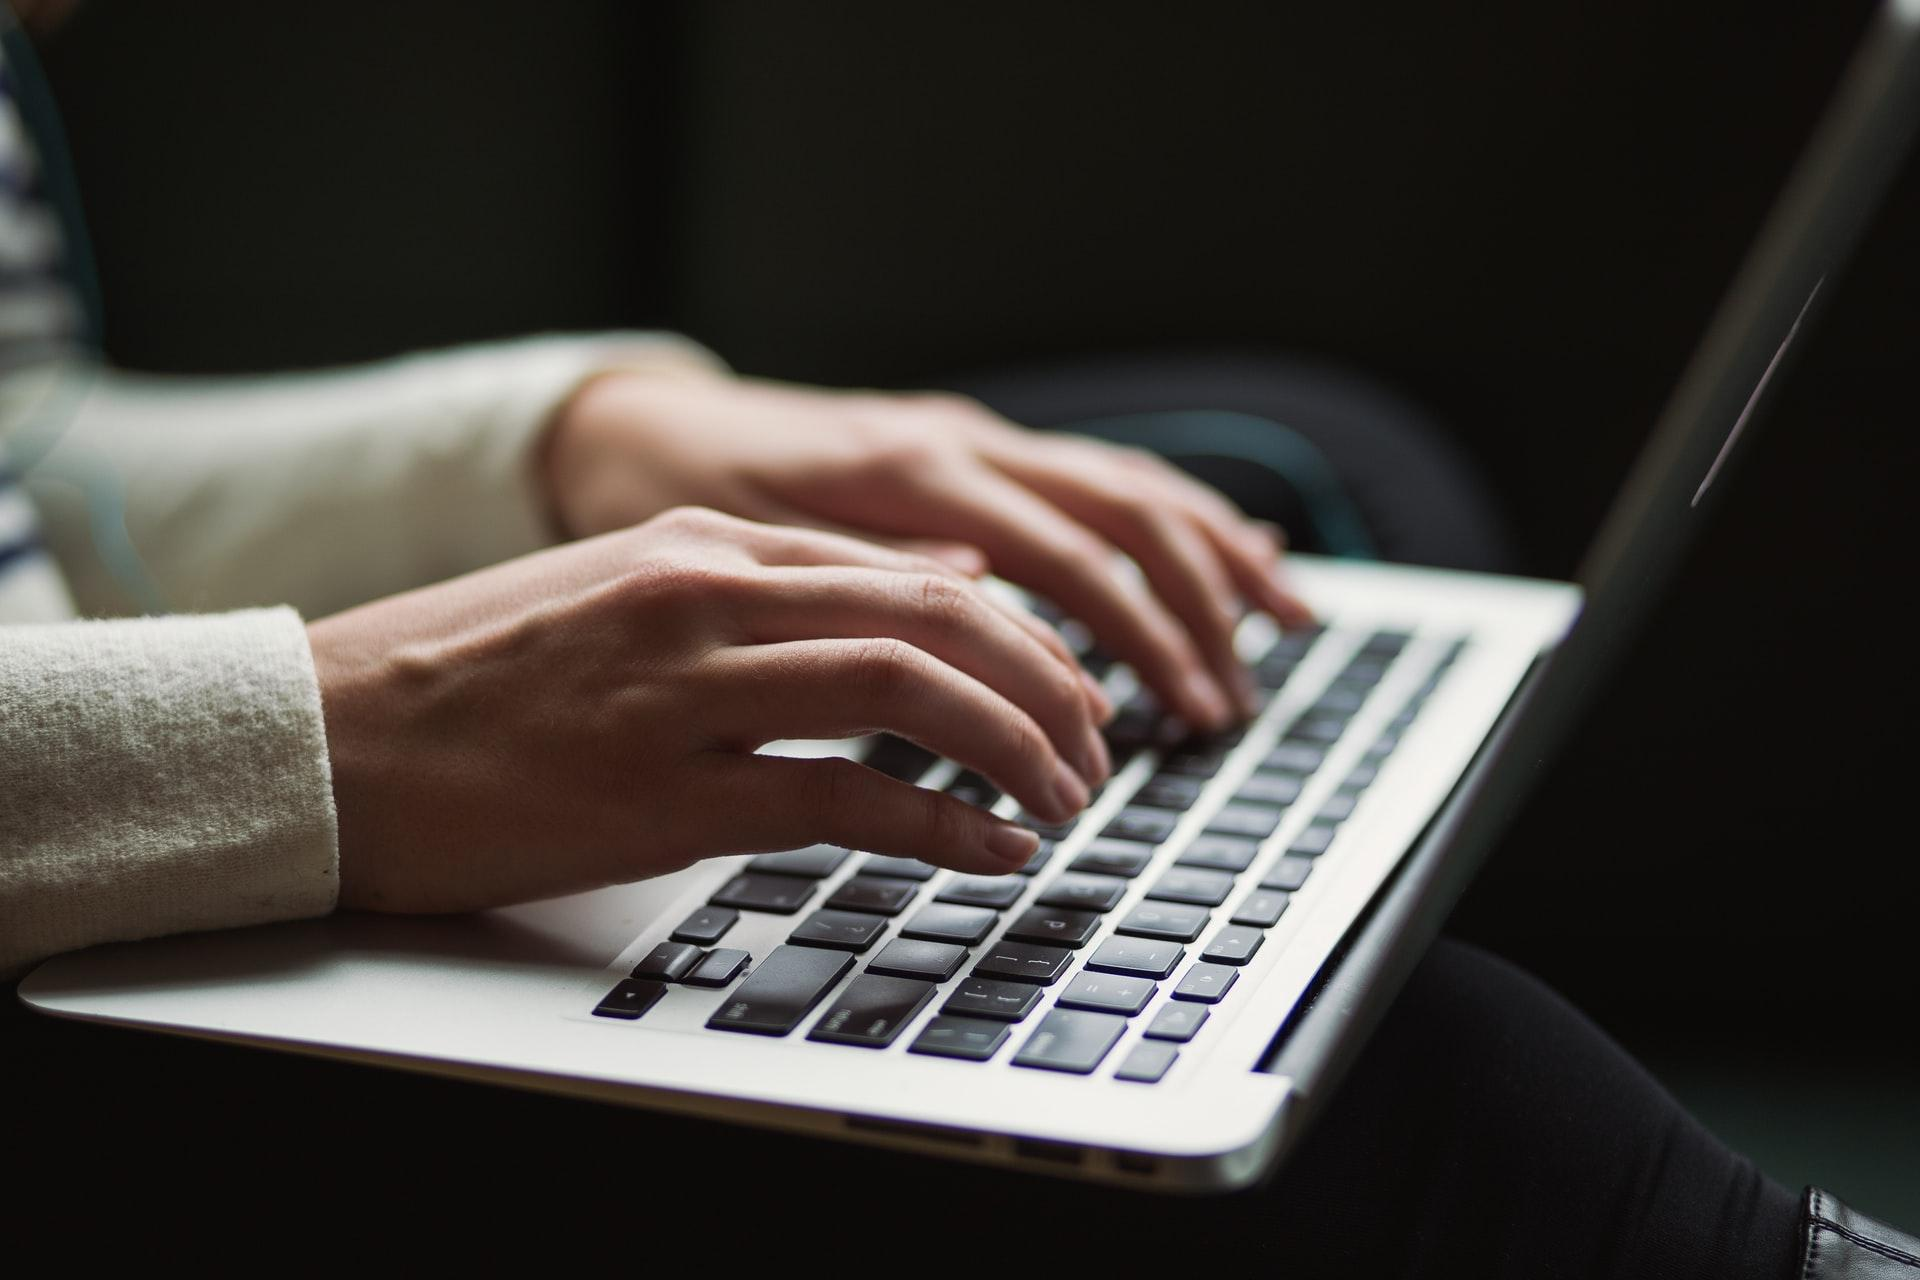 Close-up of woman's hand using laptop